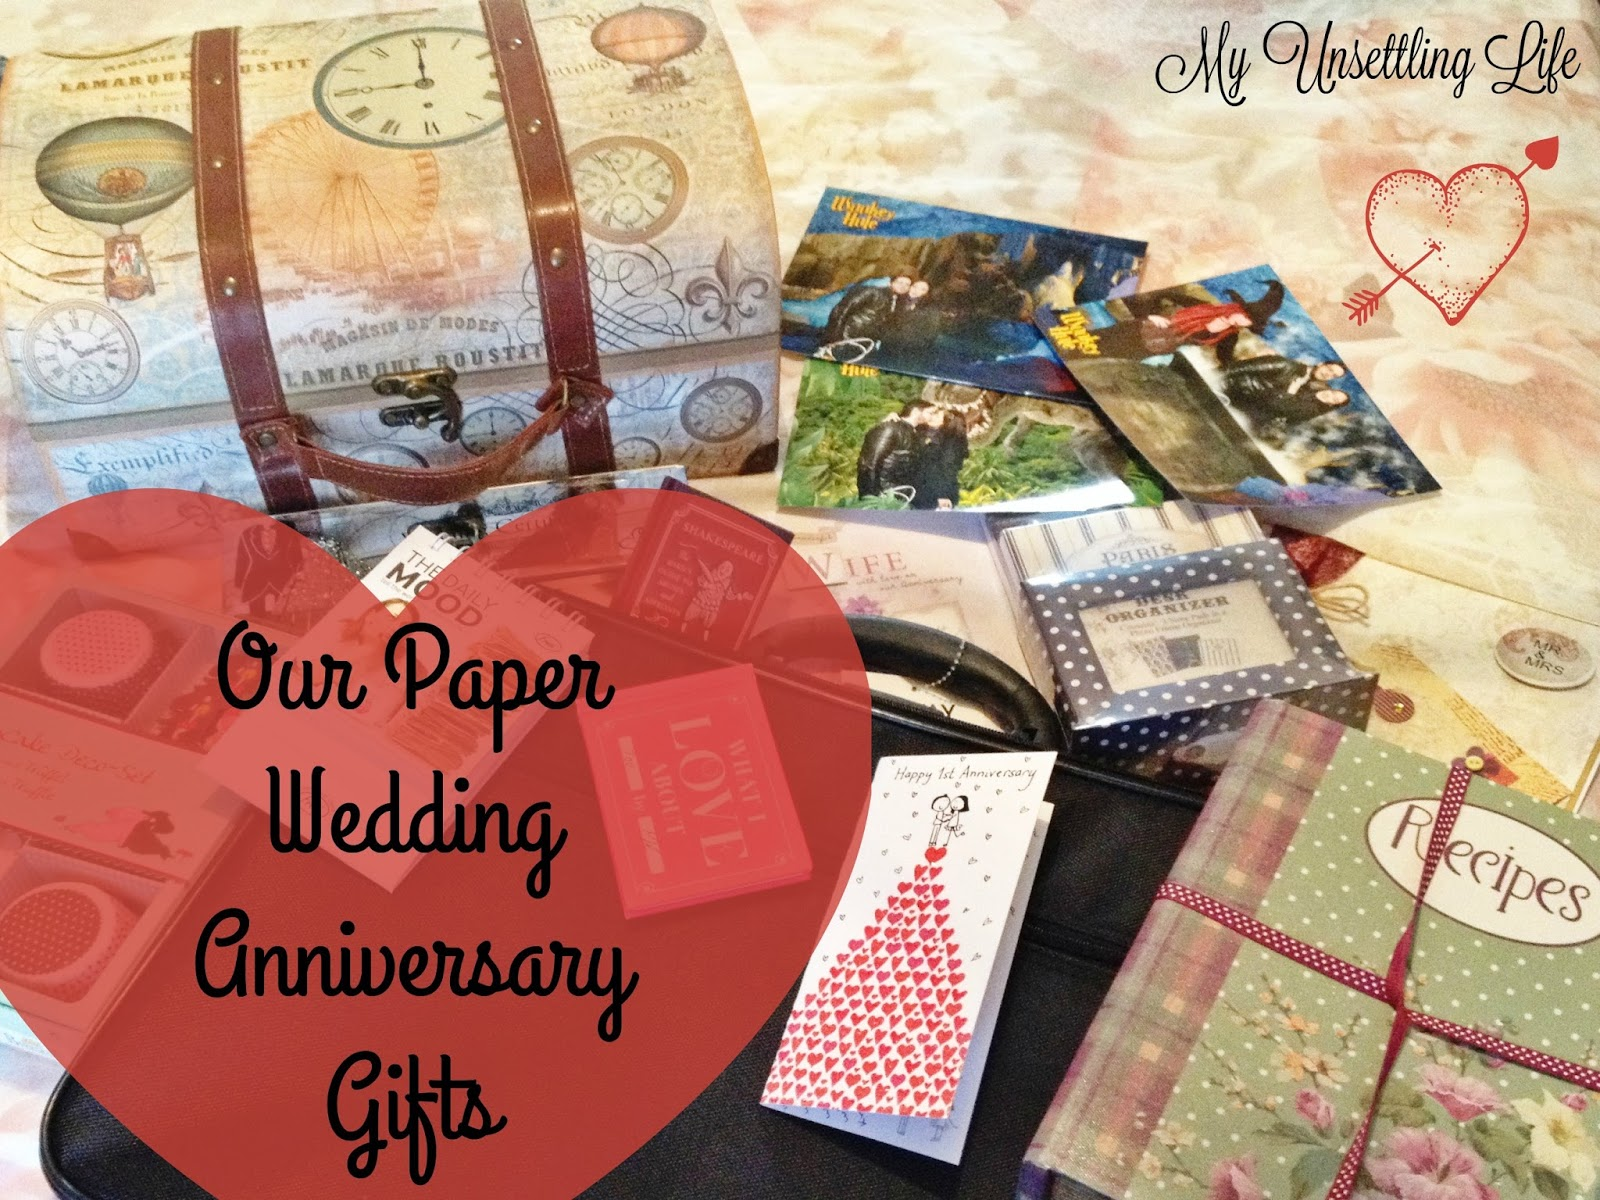 Paper Gifts For Wedding Anniversary: Our Paper Wedding Anniversary Gifts